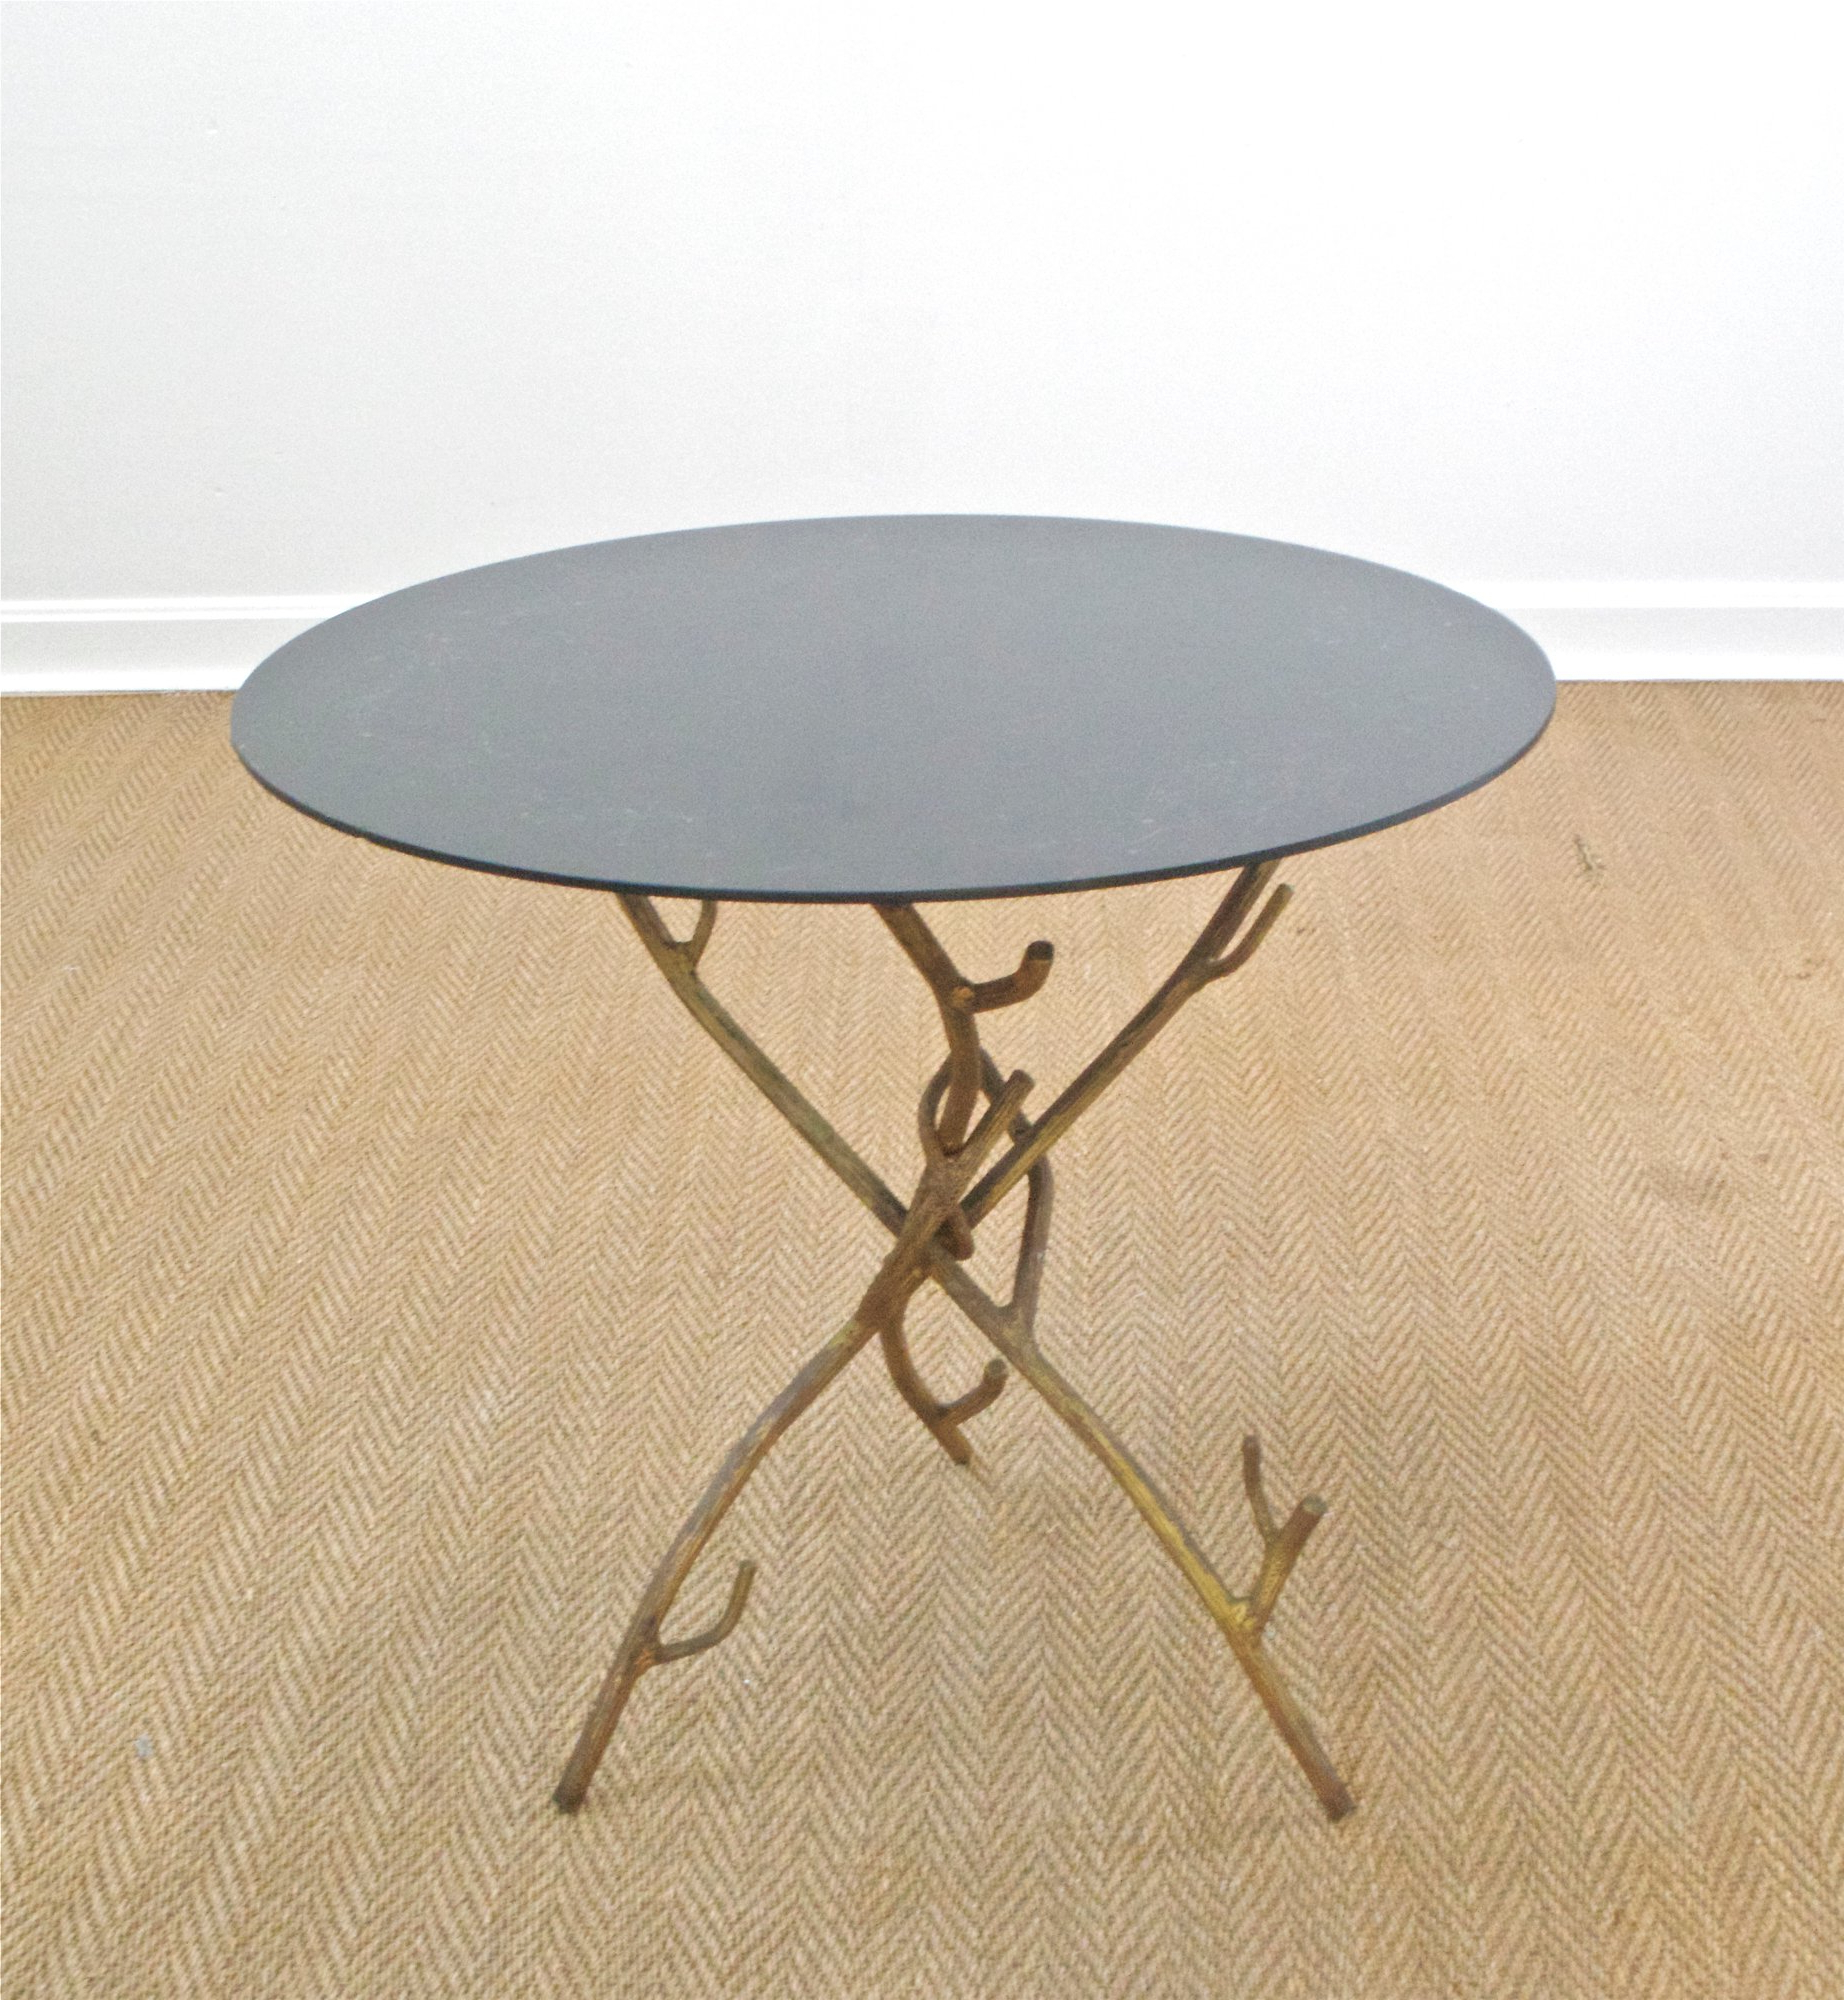 Well Known Faux Bois Cocktail Table For Sale At 1stdibs With Faux Bois Coffee Tables (View 13 of 20)